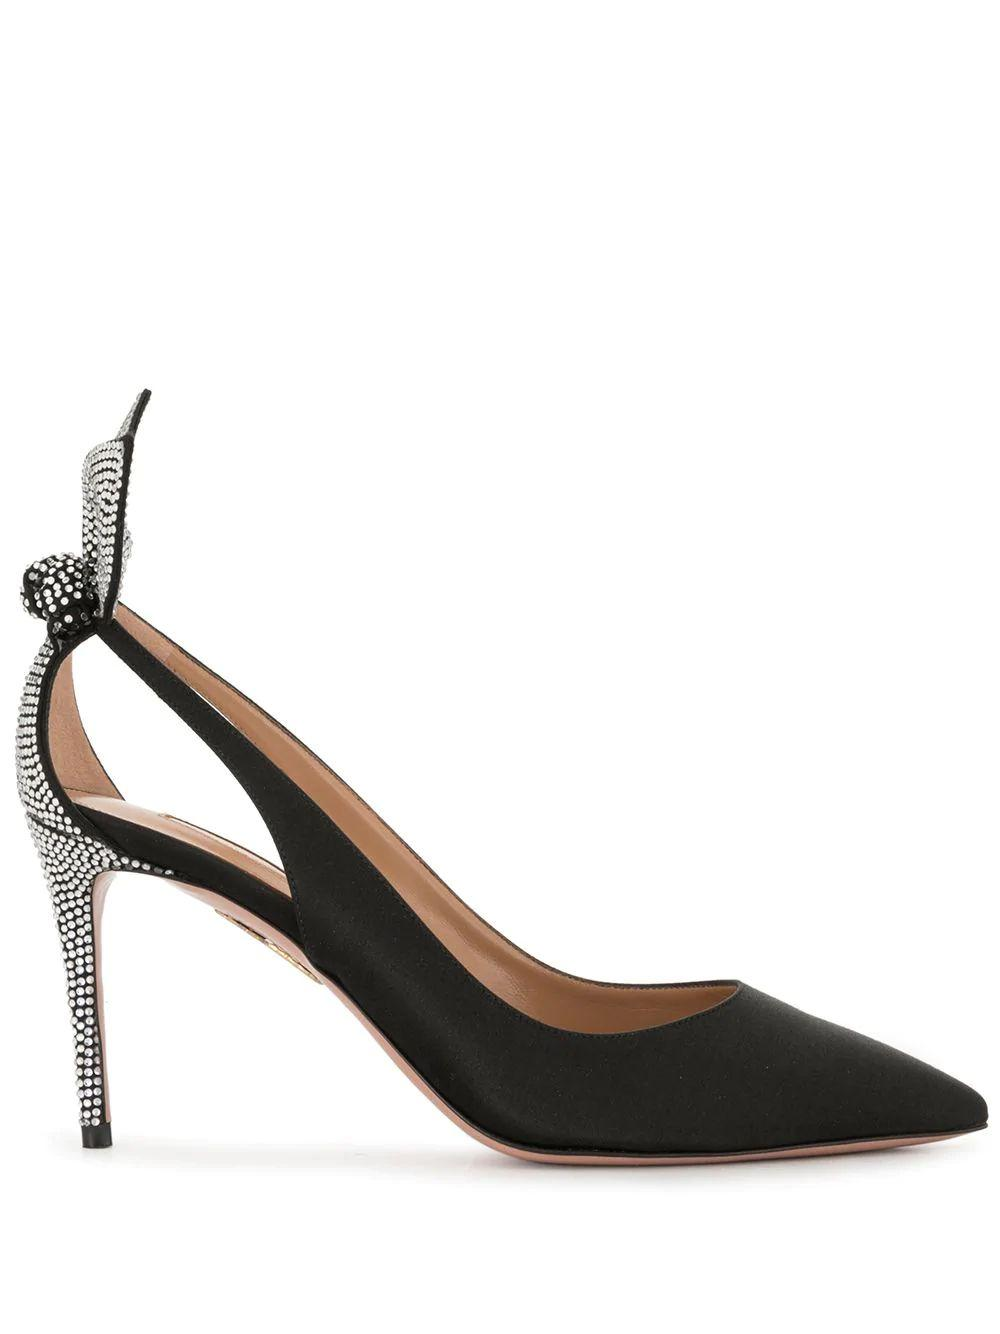 Deneuve 85mm Crystal Pump Item # DECMIDP0-SAT